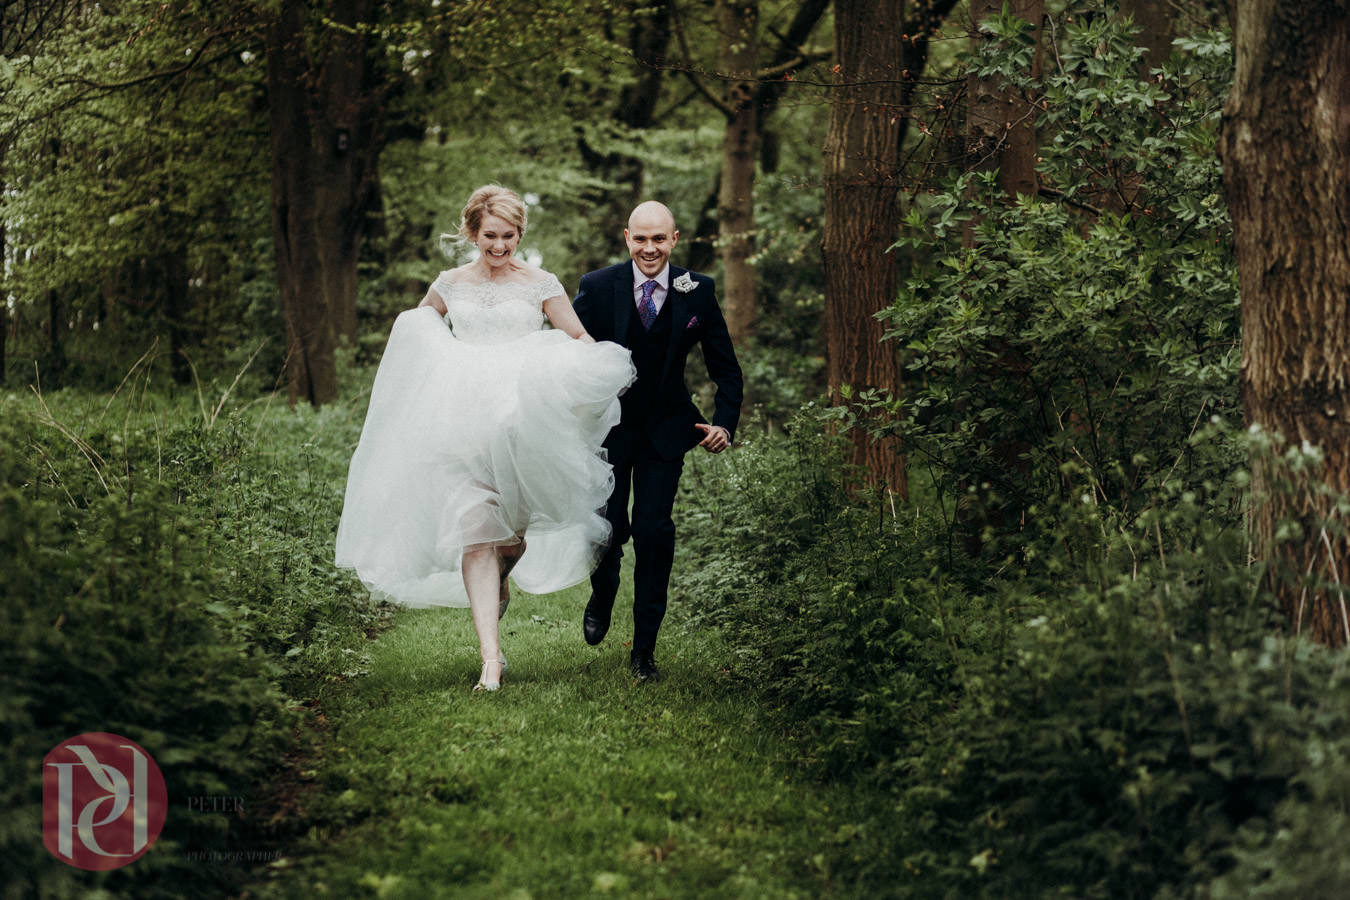 Peter_Redhead_Photography_Natural_Wedding_Photogrpaher-001